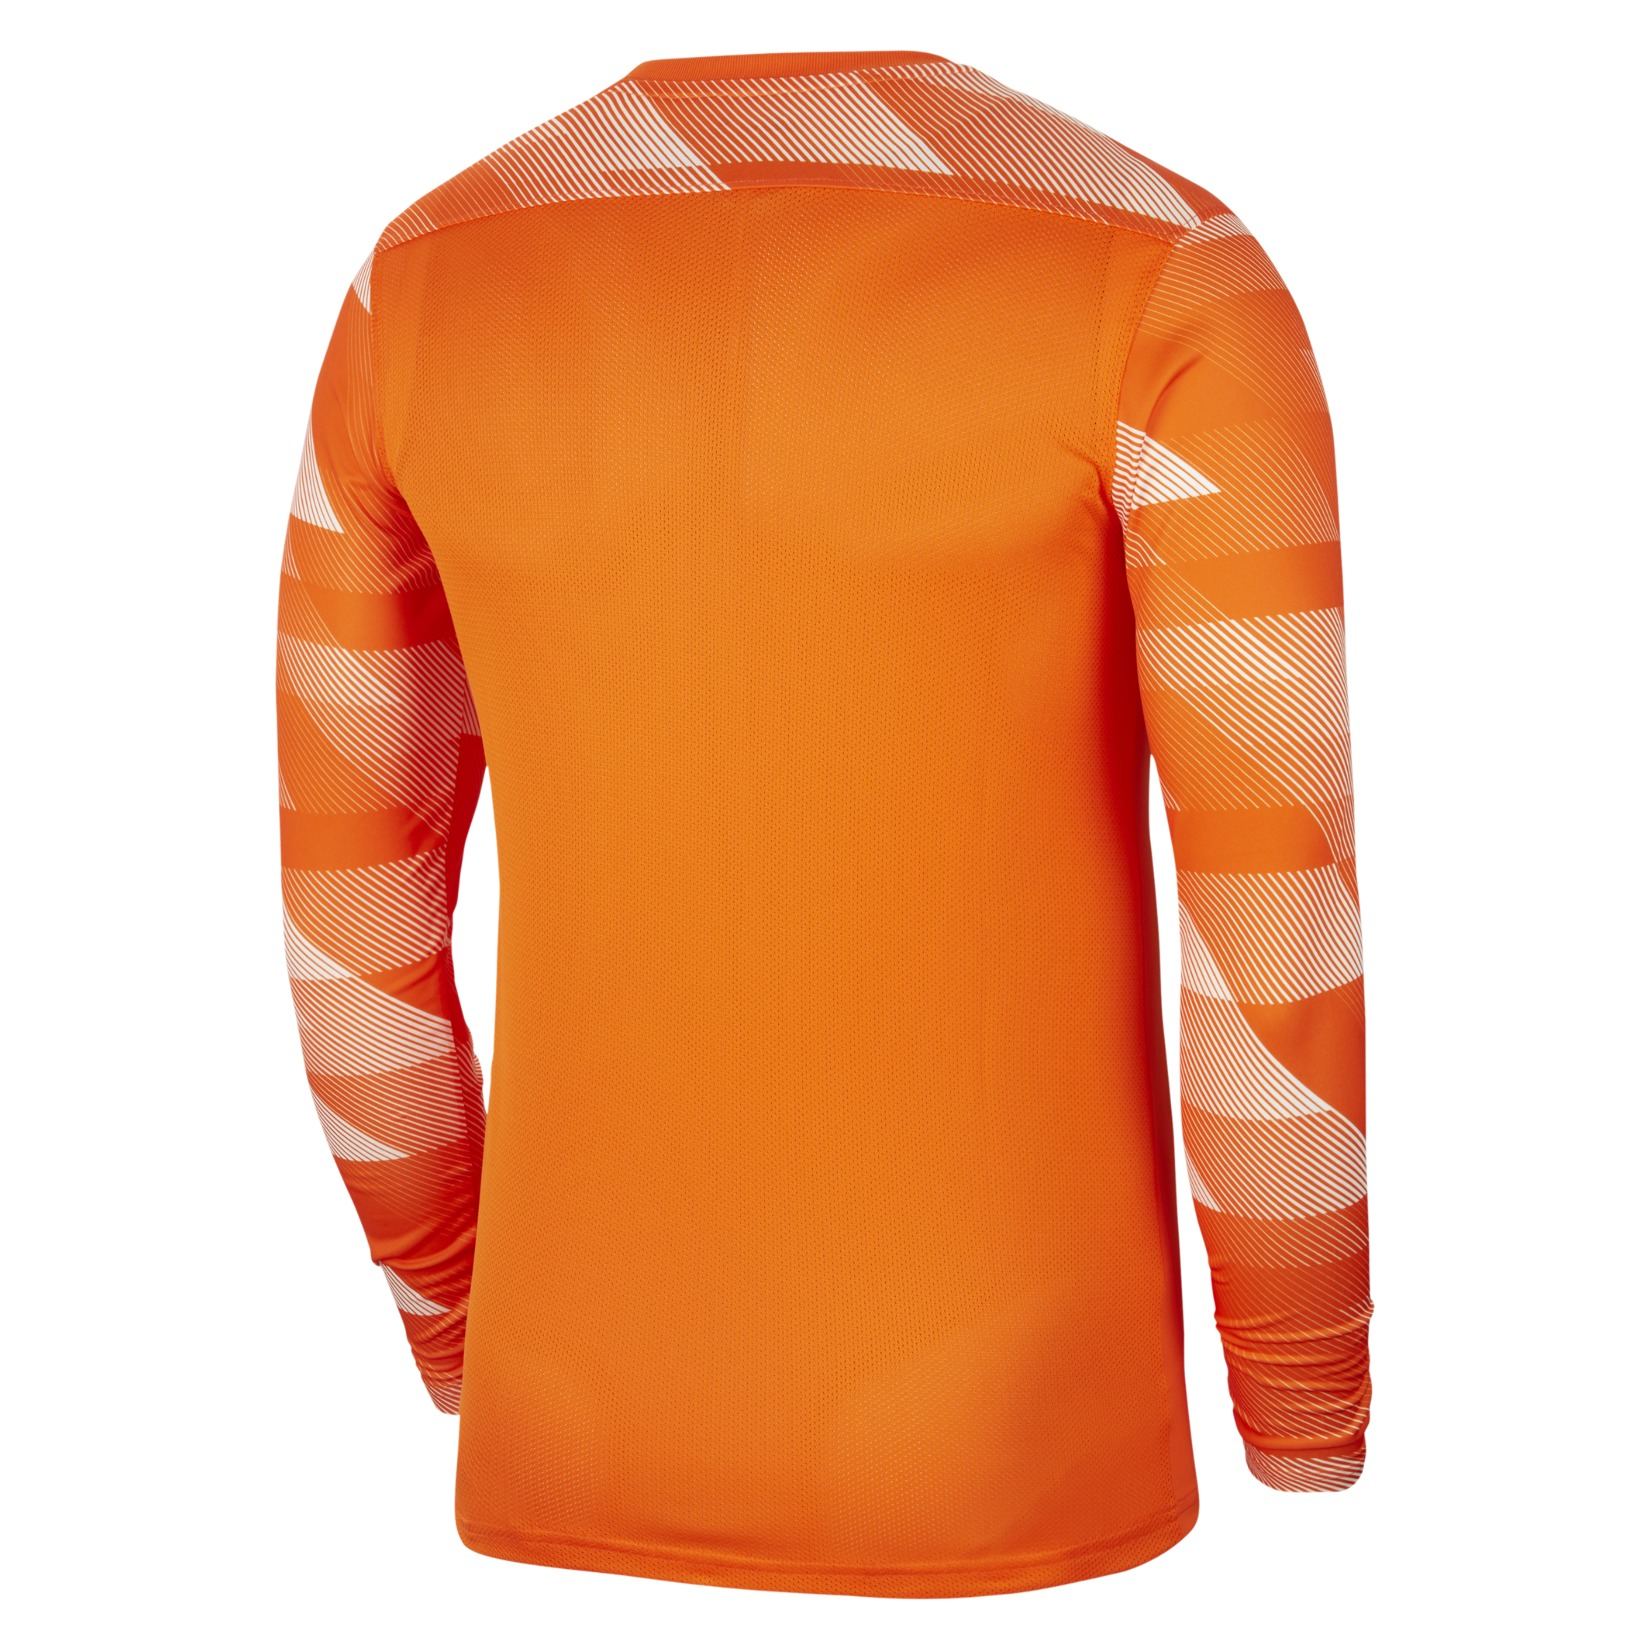 Nike Park IV Goalkeeper Dri-FIT Jersey Safety Orange-White-Black